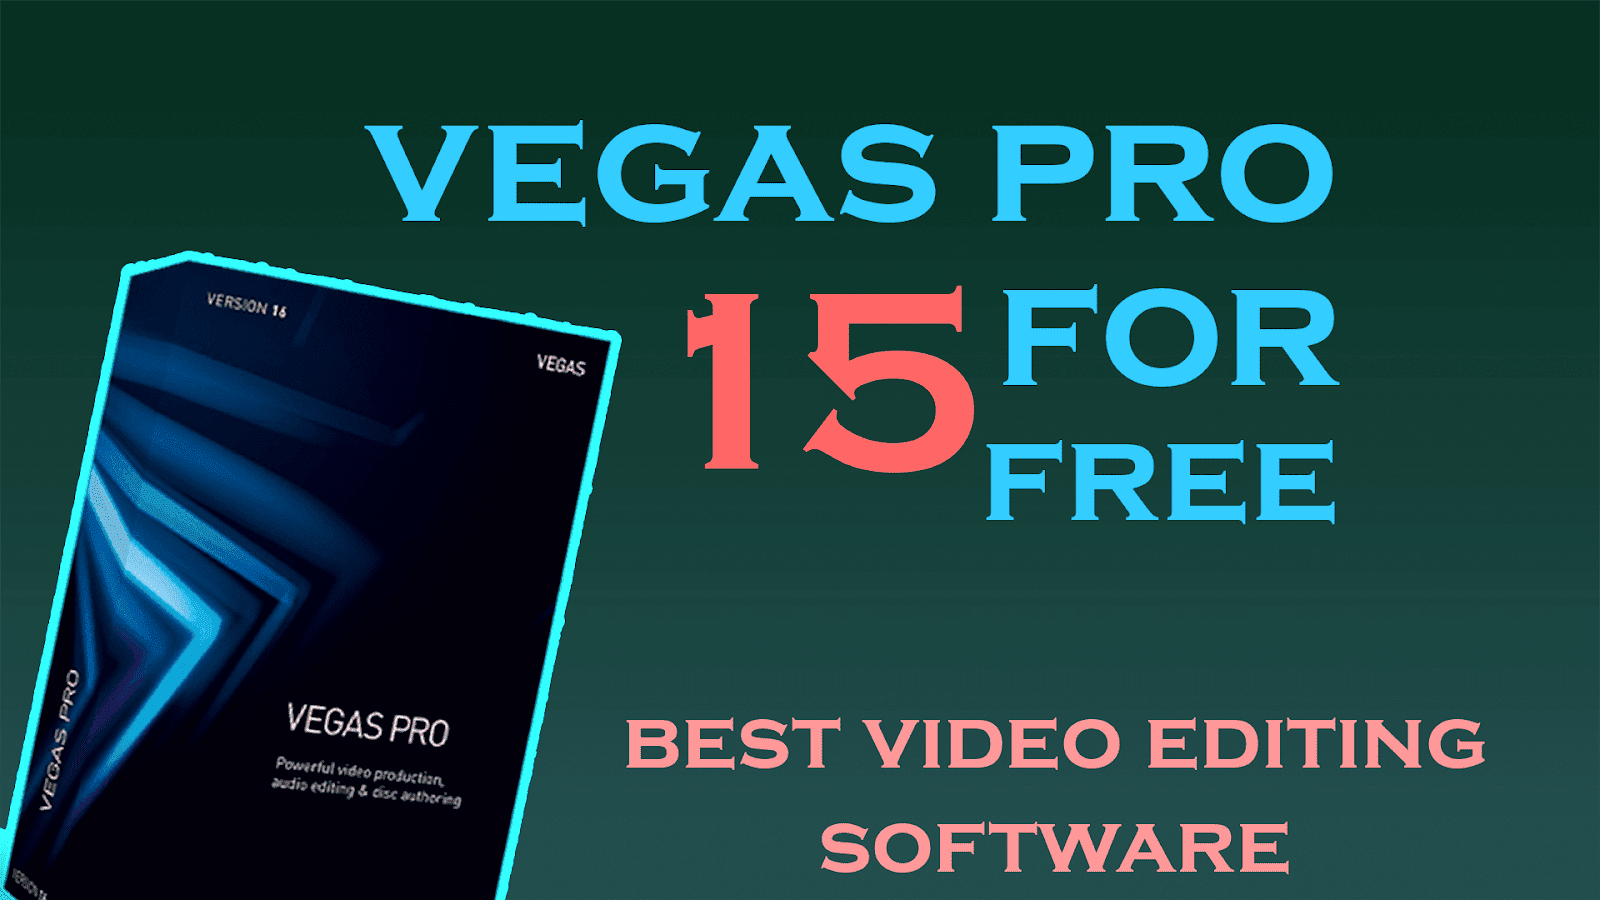 How to get Sony Vegas pro 15 for free full version in 2018